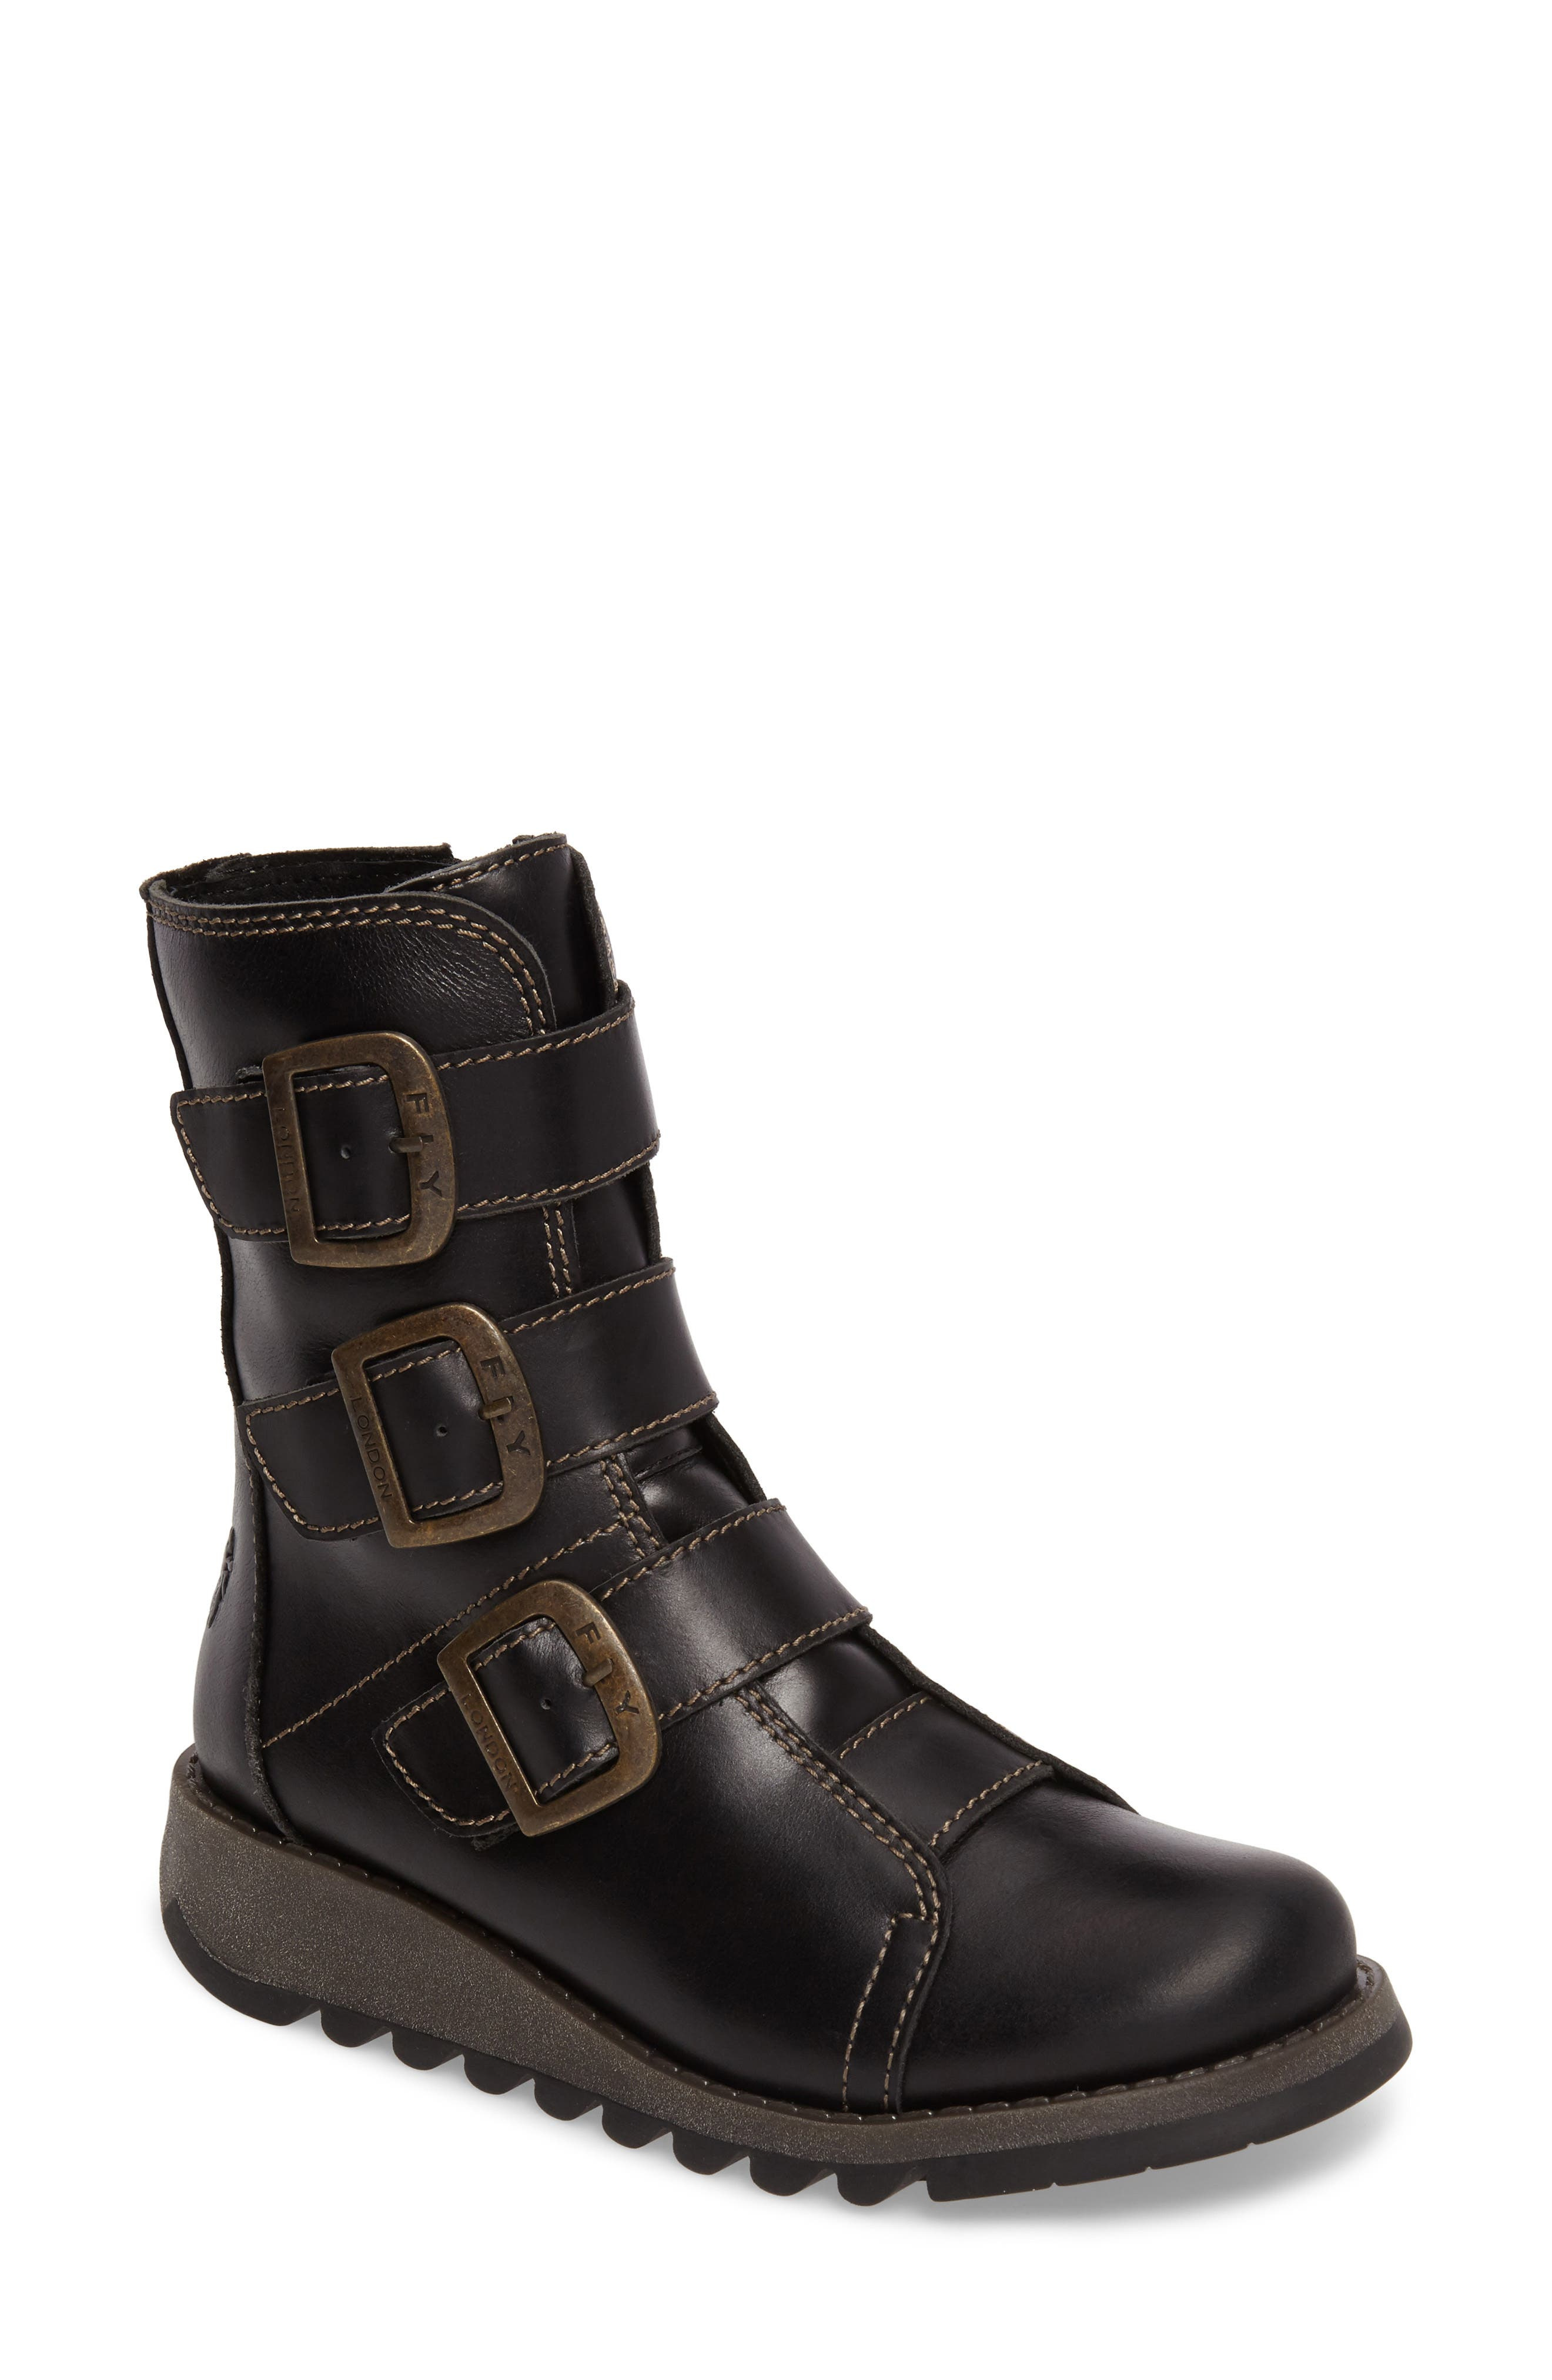 Scop Boot,                         Main,                         color, Black Leather